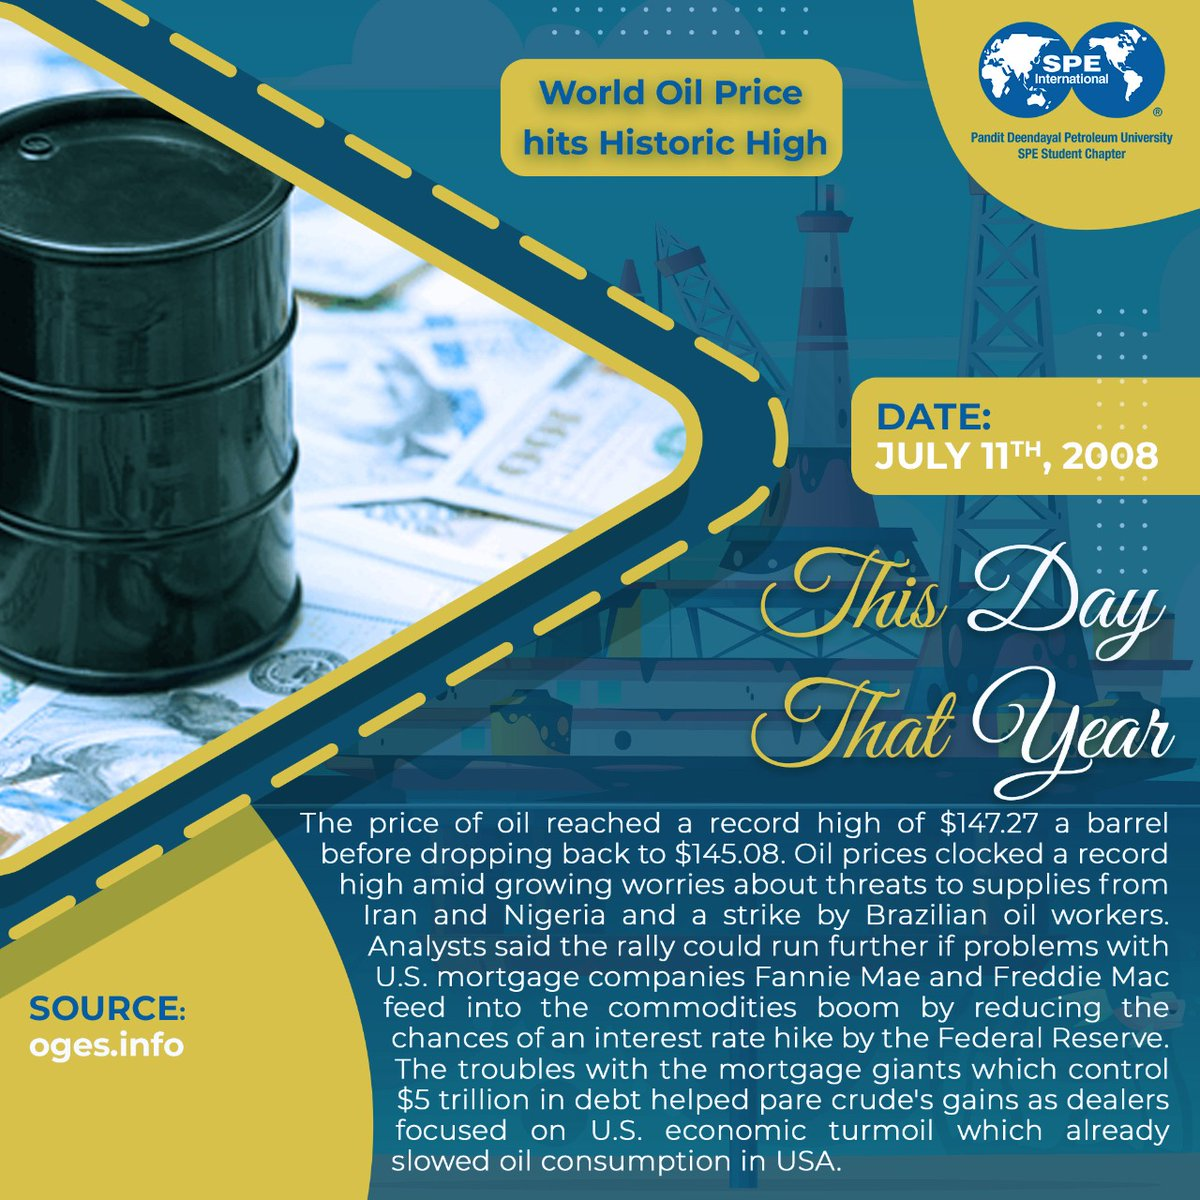 A steep rise in the price of oil in 2008 also mirrored by other commodities culminated in an all time high of $147.27 during trading on 11 July 2008, more than a third above the previous inflation adjusted high.  @SPEtweets  #thisdaythatyear #ThisDayInHistory<br>http://pic.twitter.com/mFg42av26j